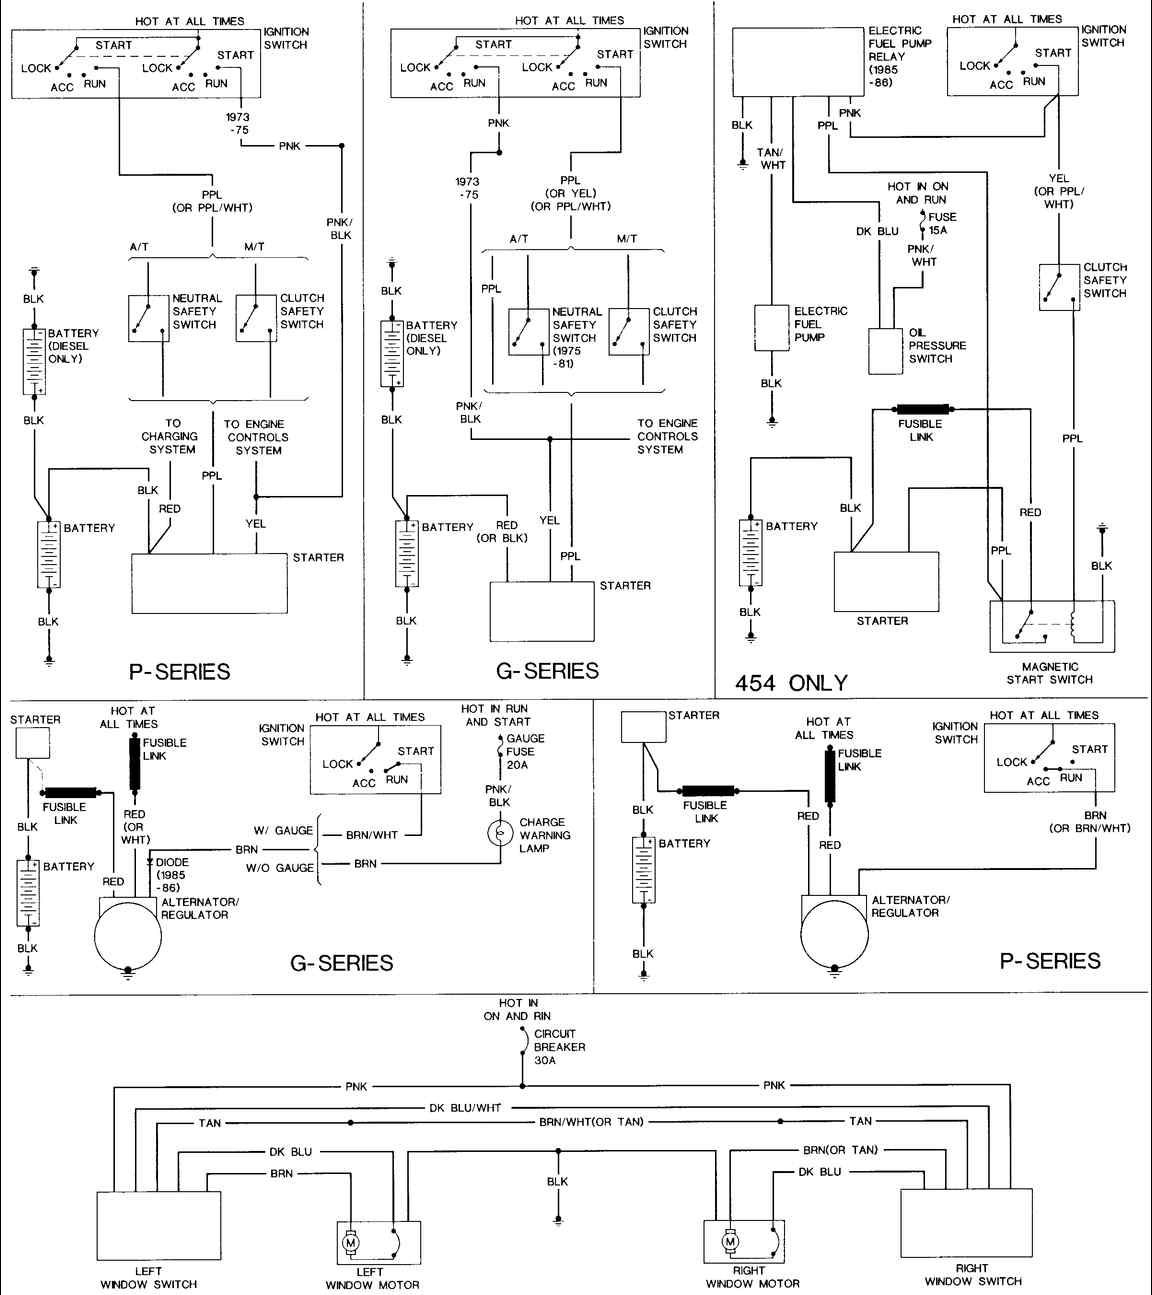 0c73623a181dc376dbb4777e2029d285 85 chevy truck wiring diagram 85 chevy van the steering column 68 chevy c10 wiring diagram at gsmx.co